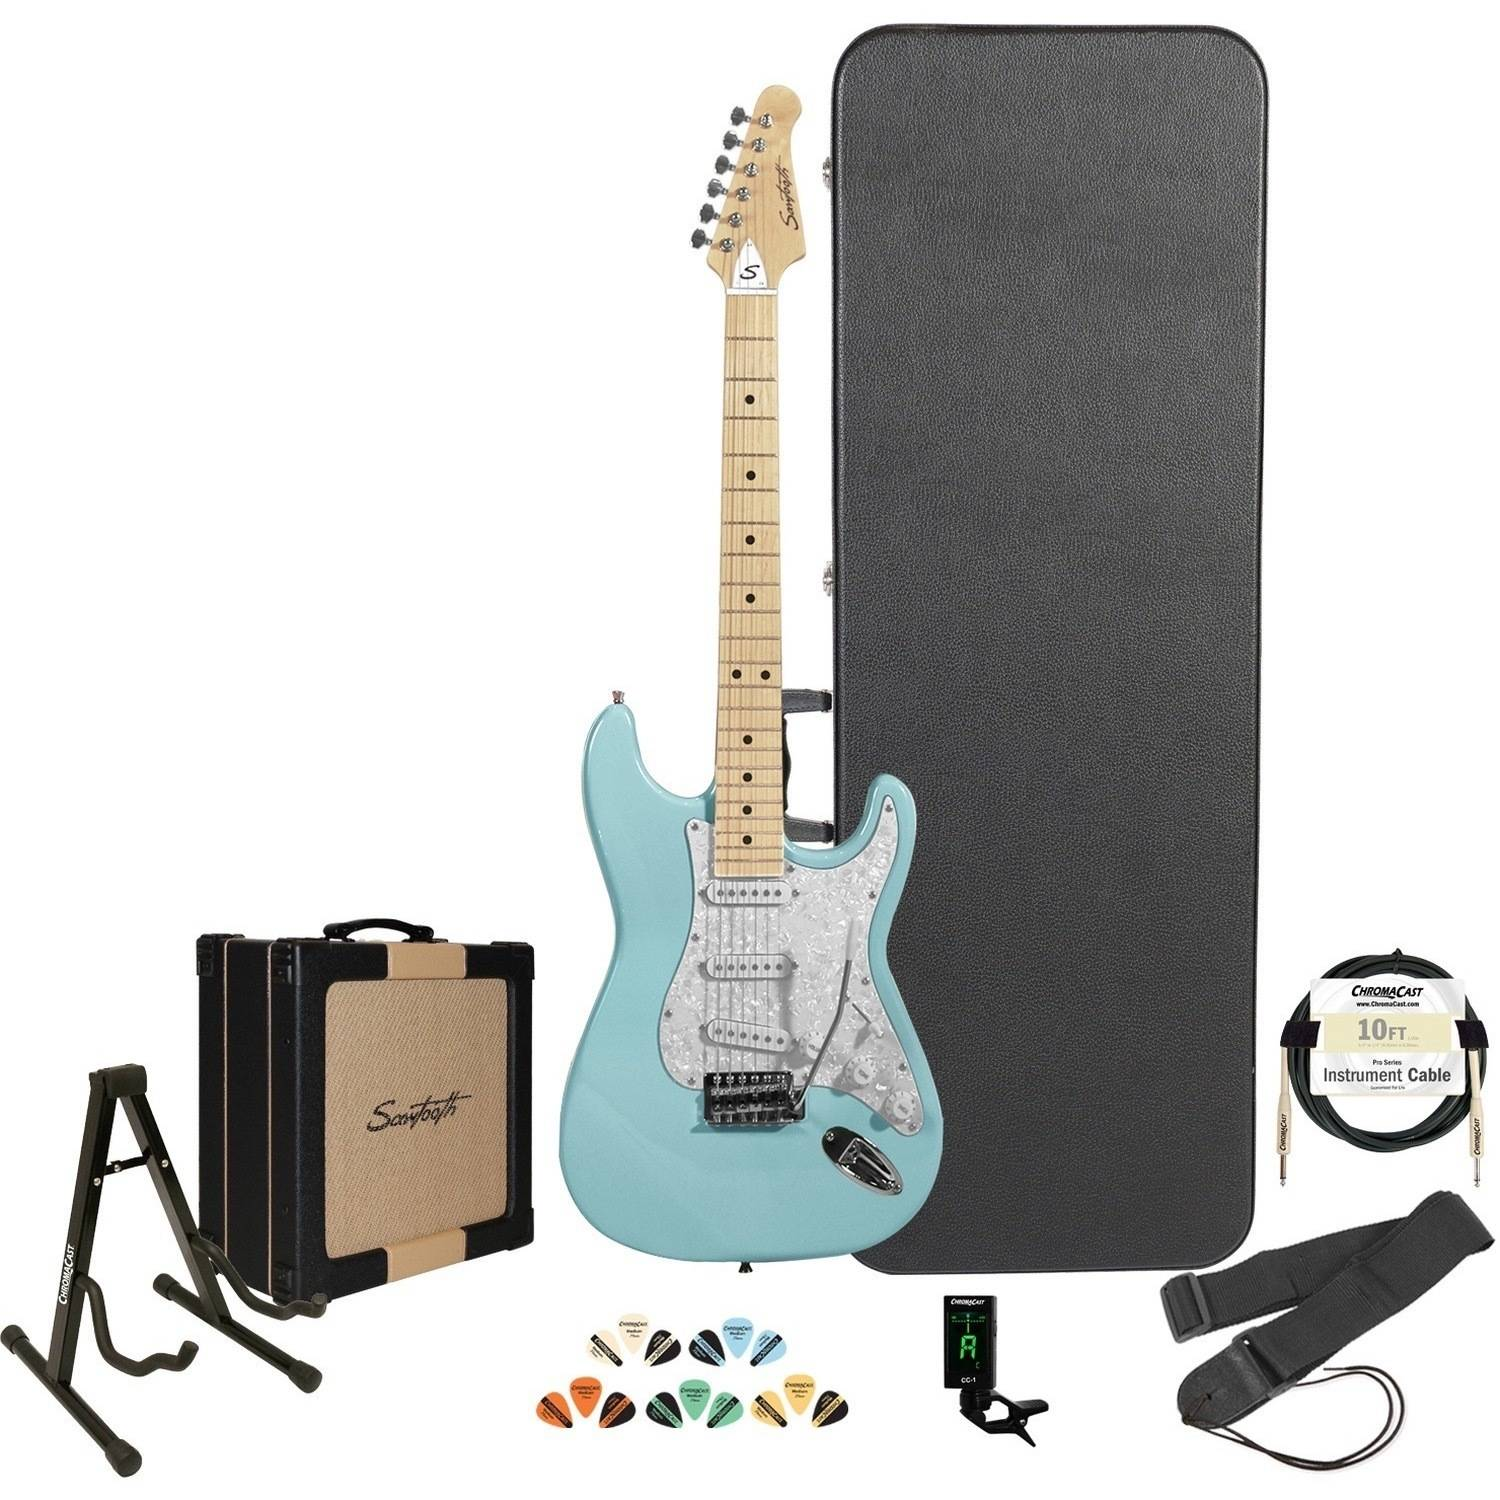 Sawtooth ES Series Electric Guitar with Retro 25w Sawtooth Amp & ChromaCast Accessories